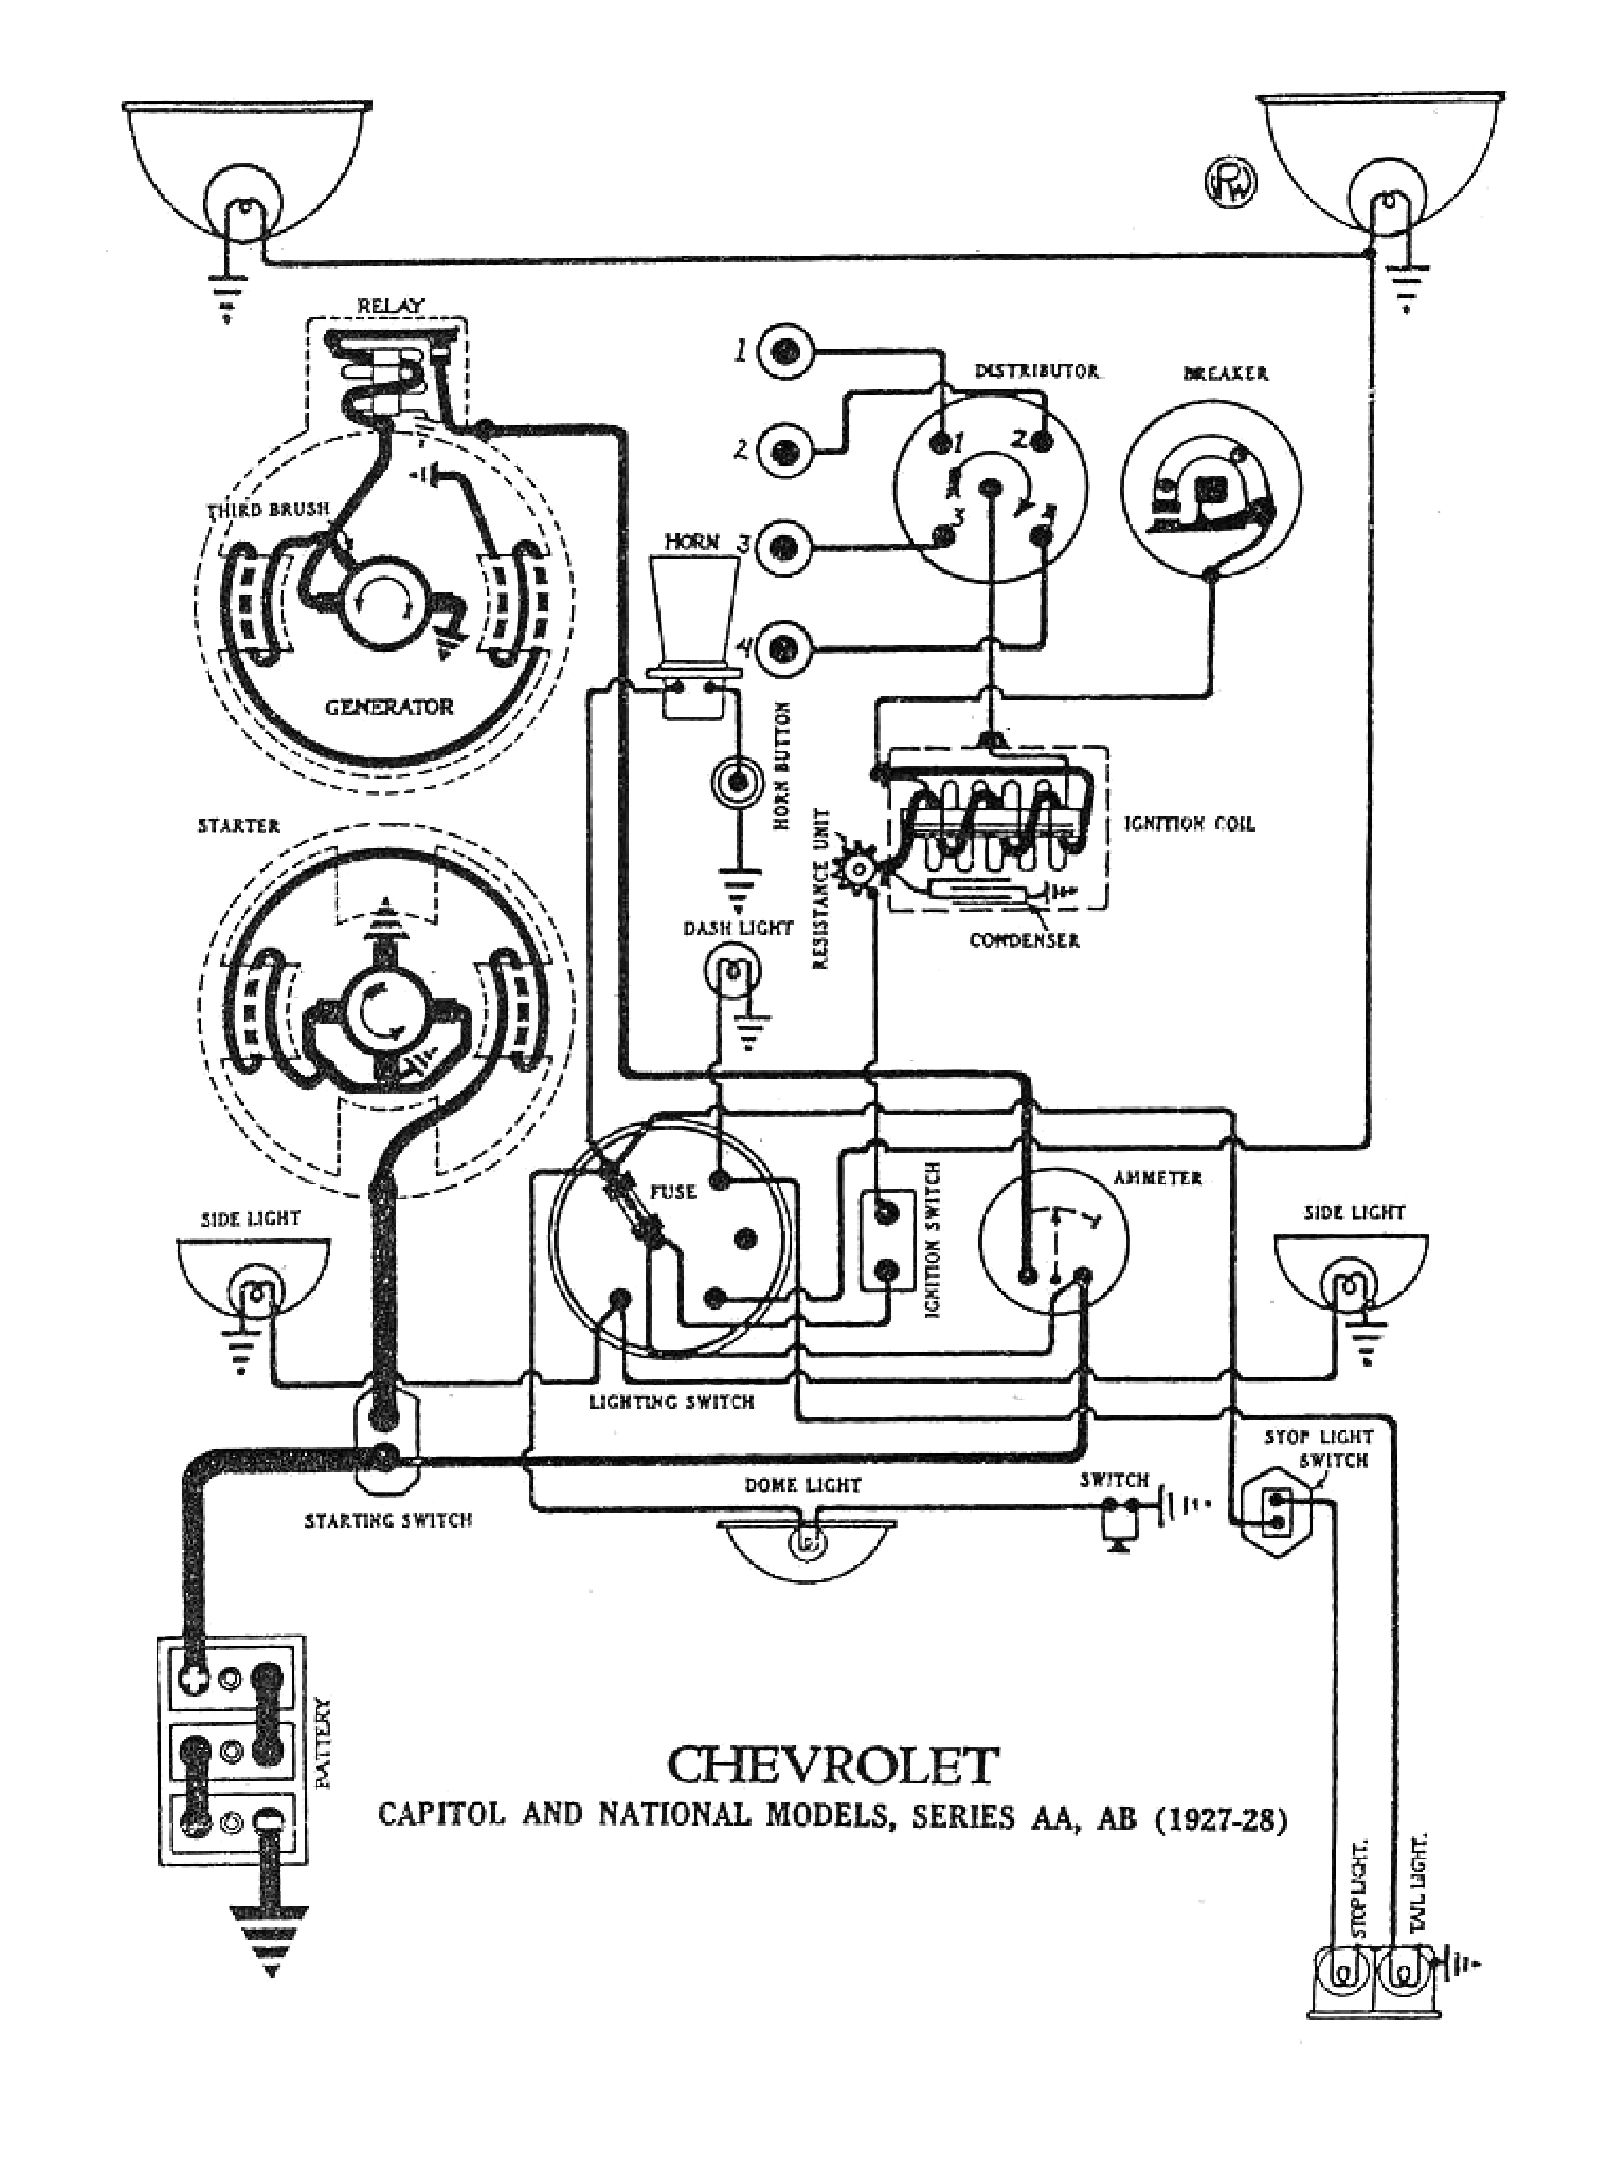 1972 corvette ignition coil wiring diagram basic simple wiring diagram rh  david huggett co uk